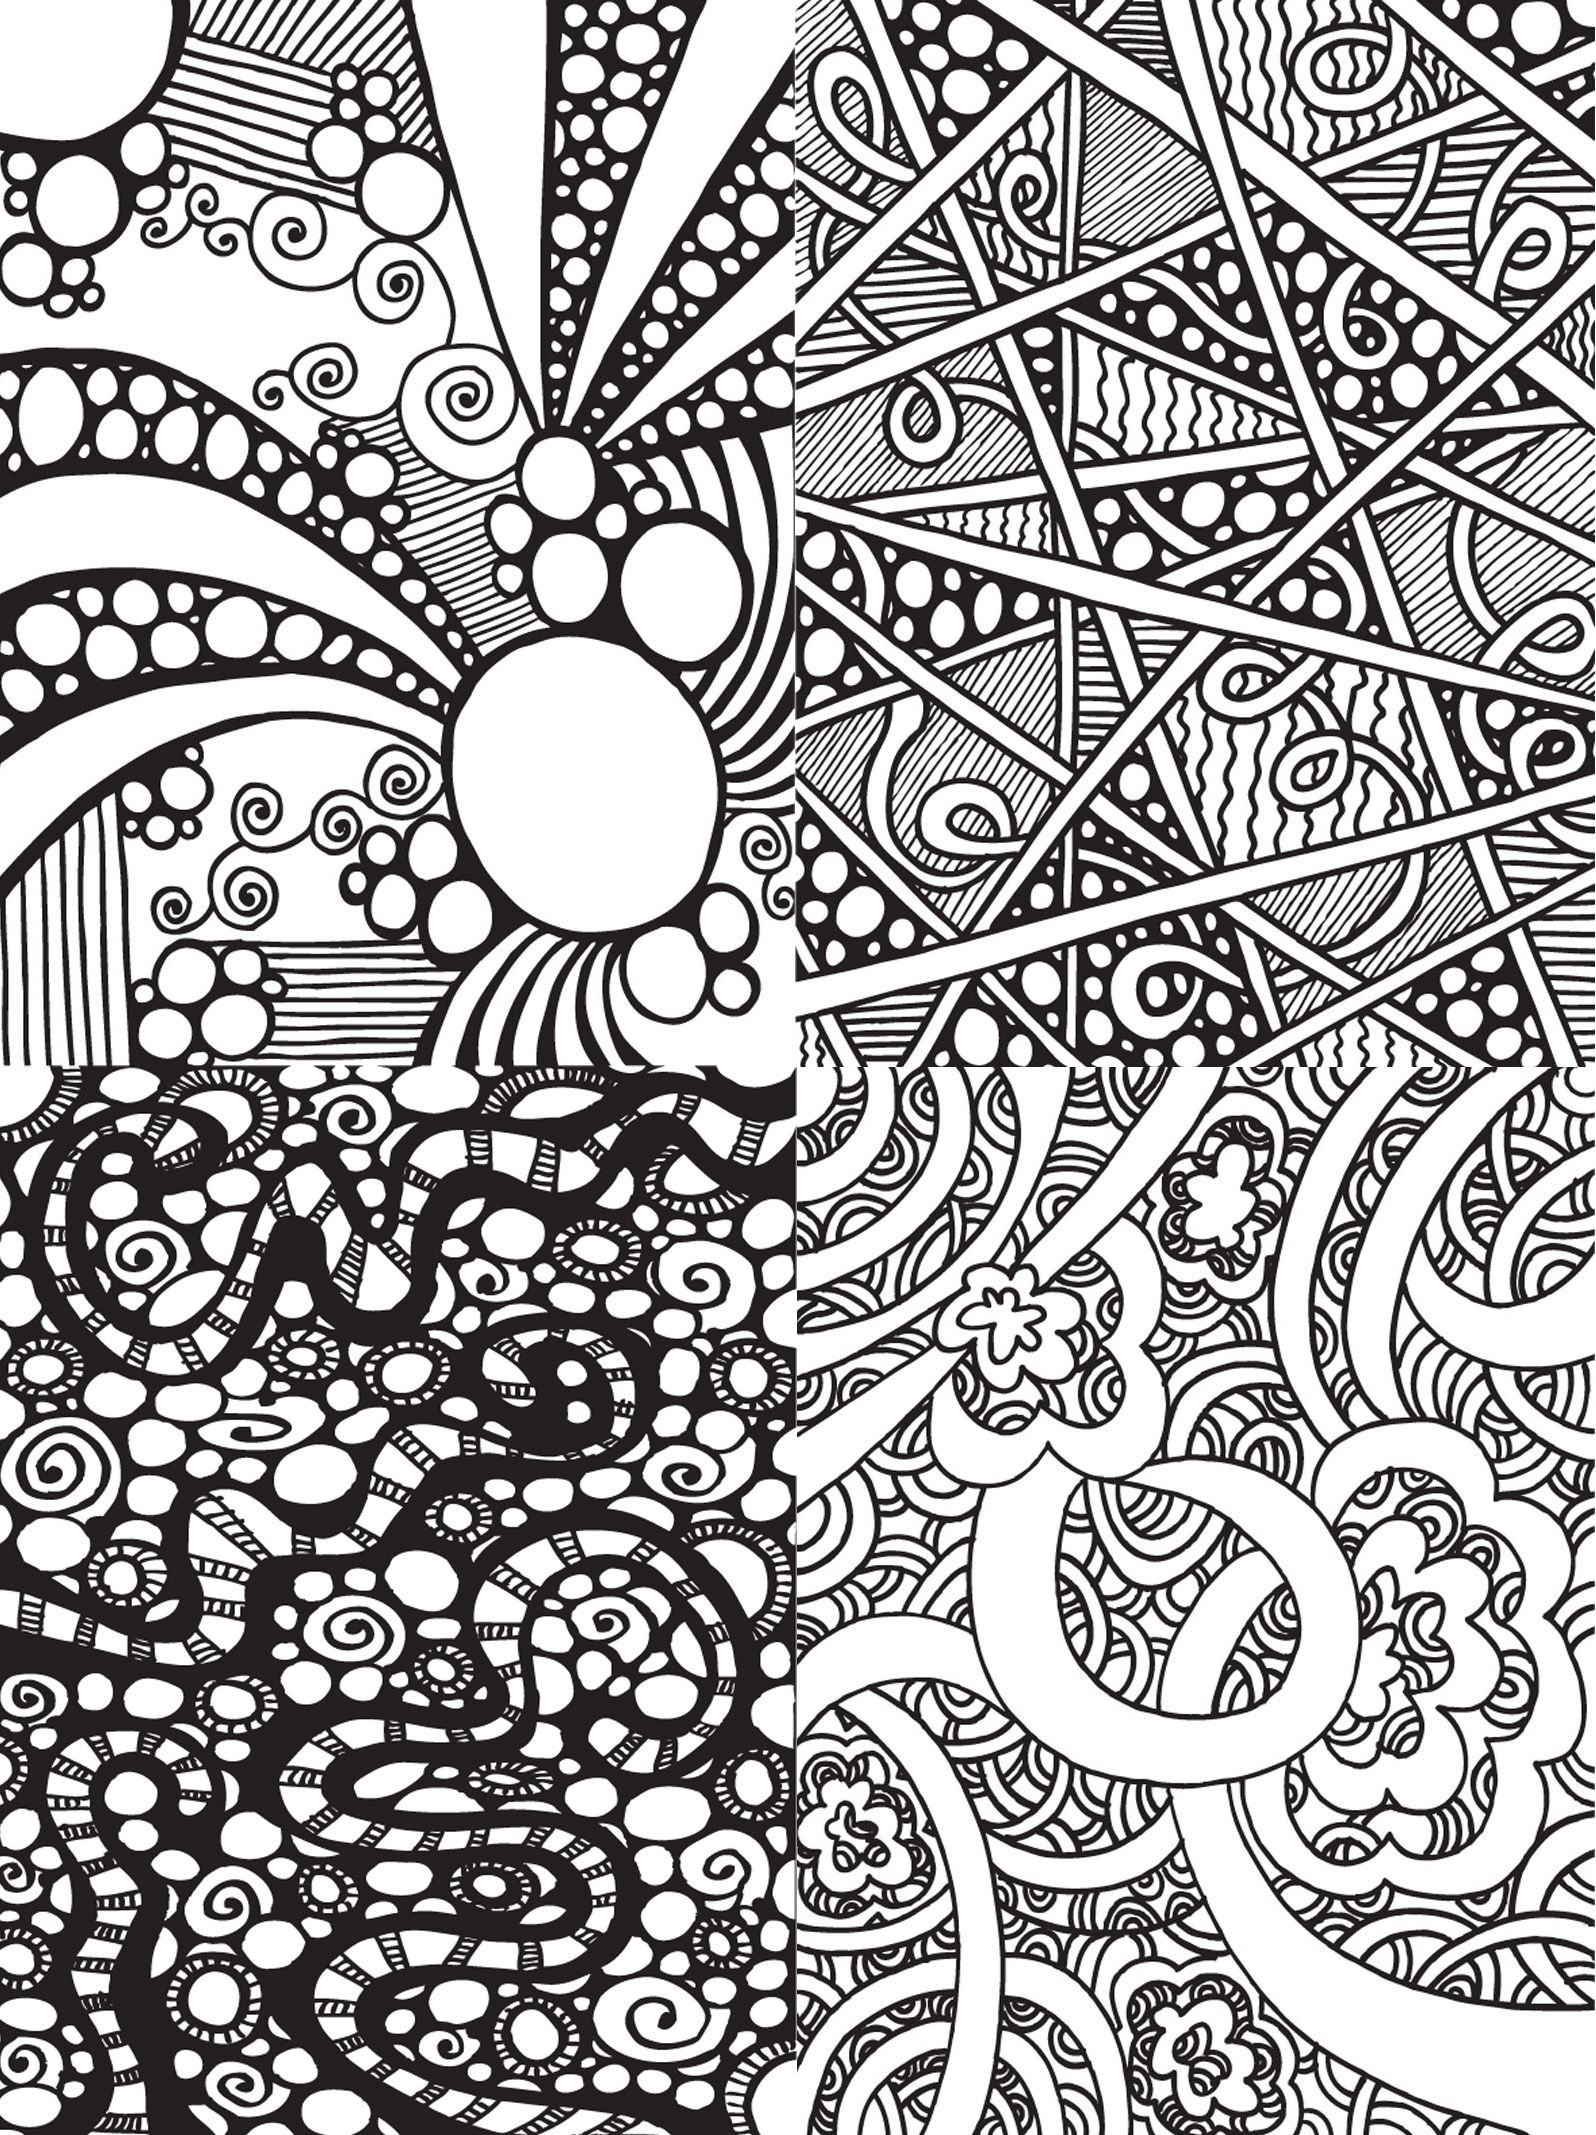 abstract doodles - Google Search | 4.may.coloring | Pinterest ...